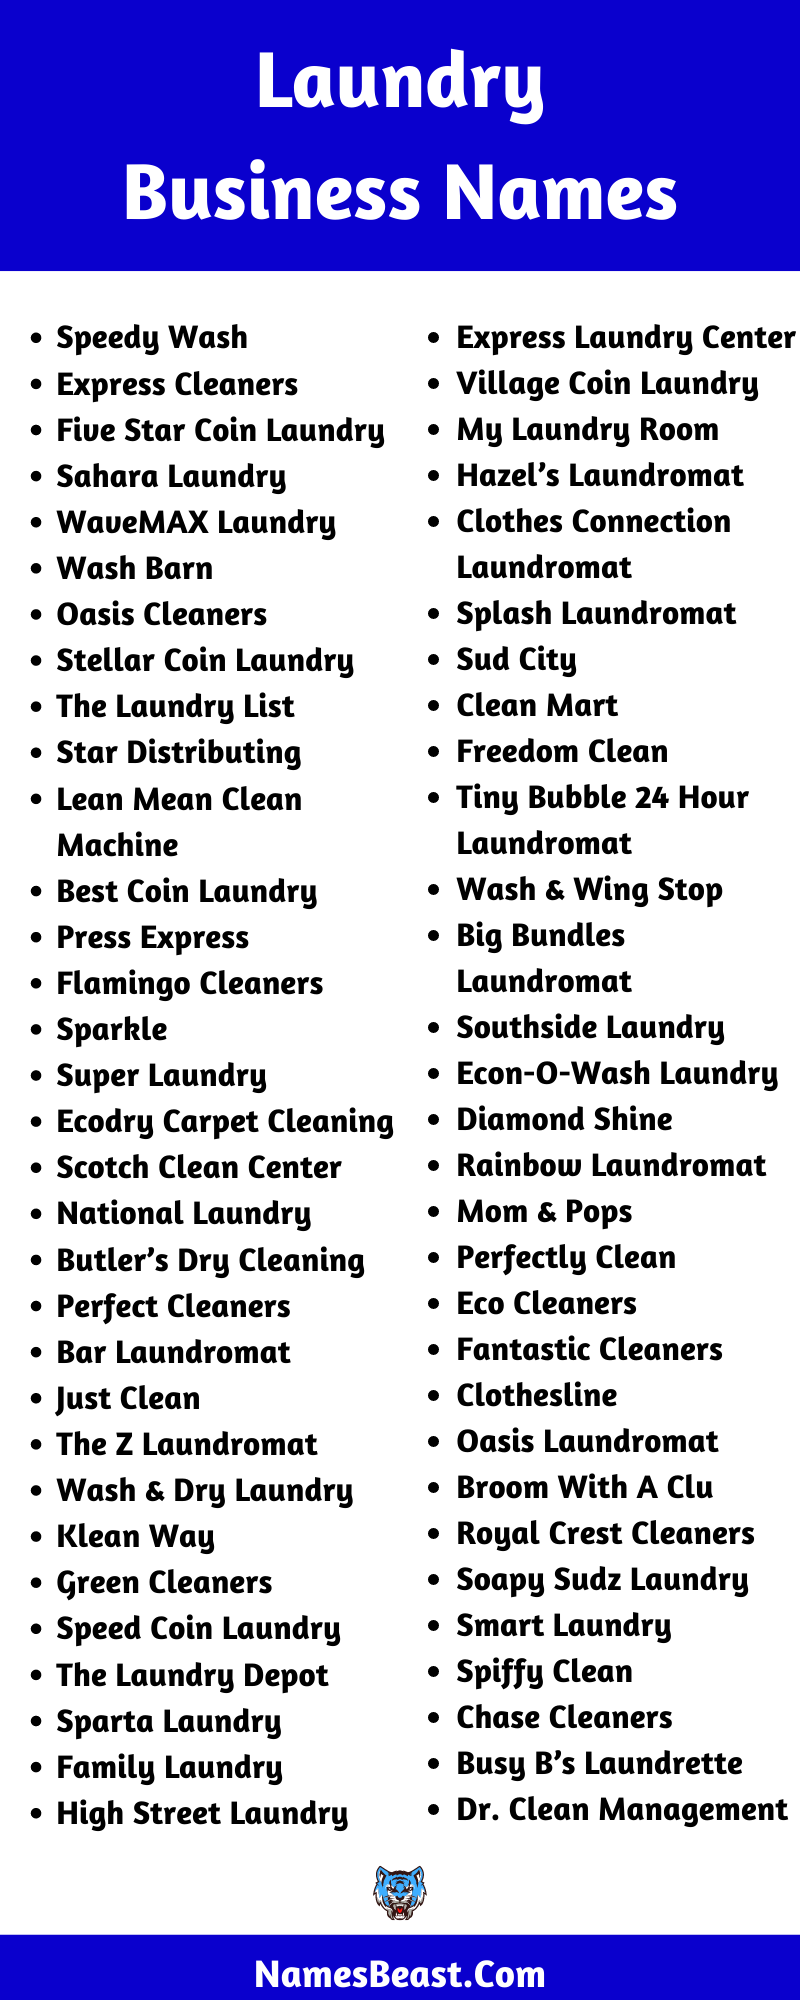 Laundry Business Name Ideas